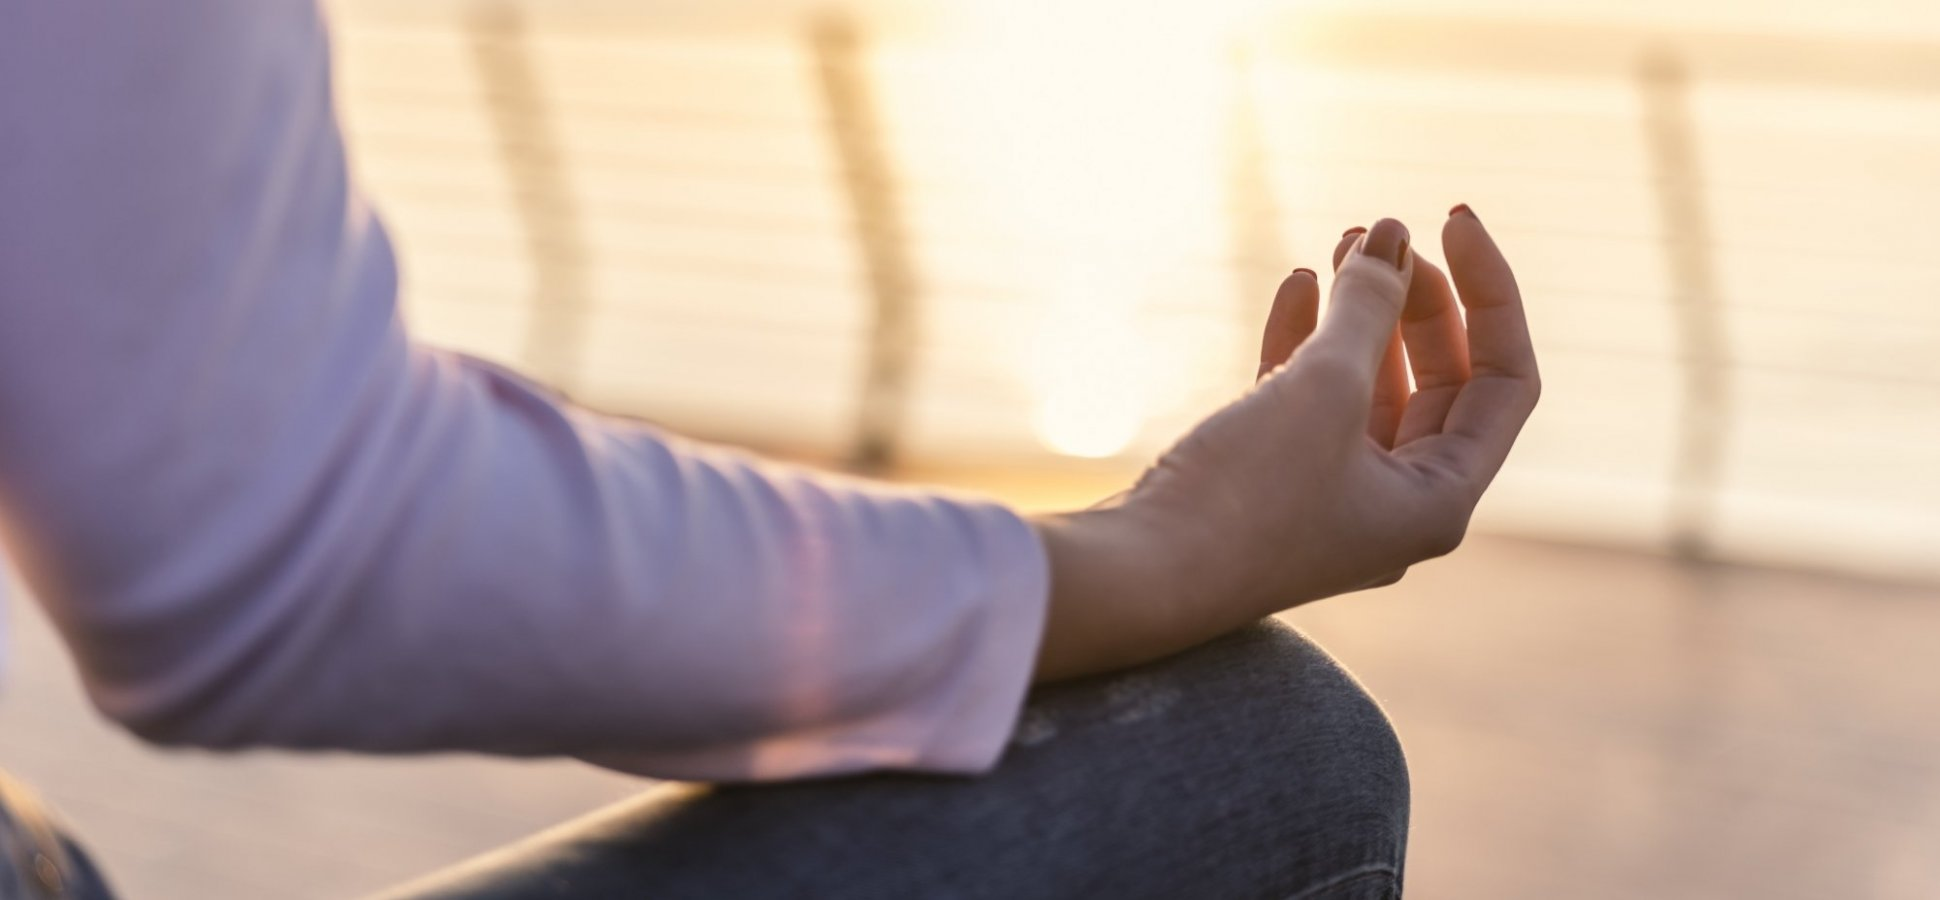 7 Habits You'll Notice the Happiest People Practicing (but Most of Us Rarely Do)